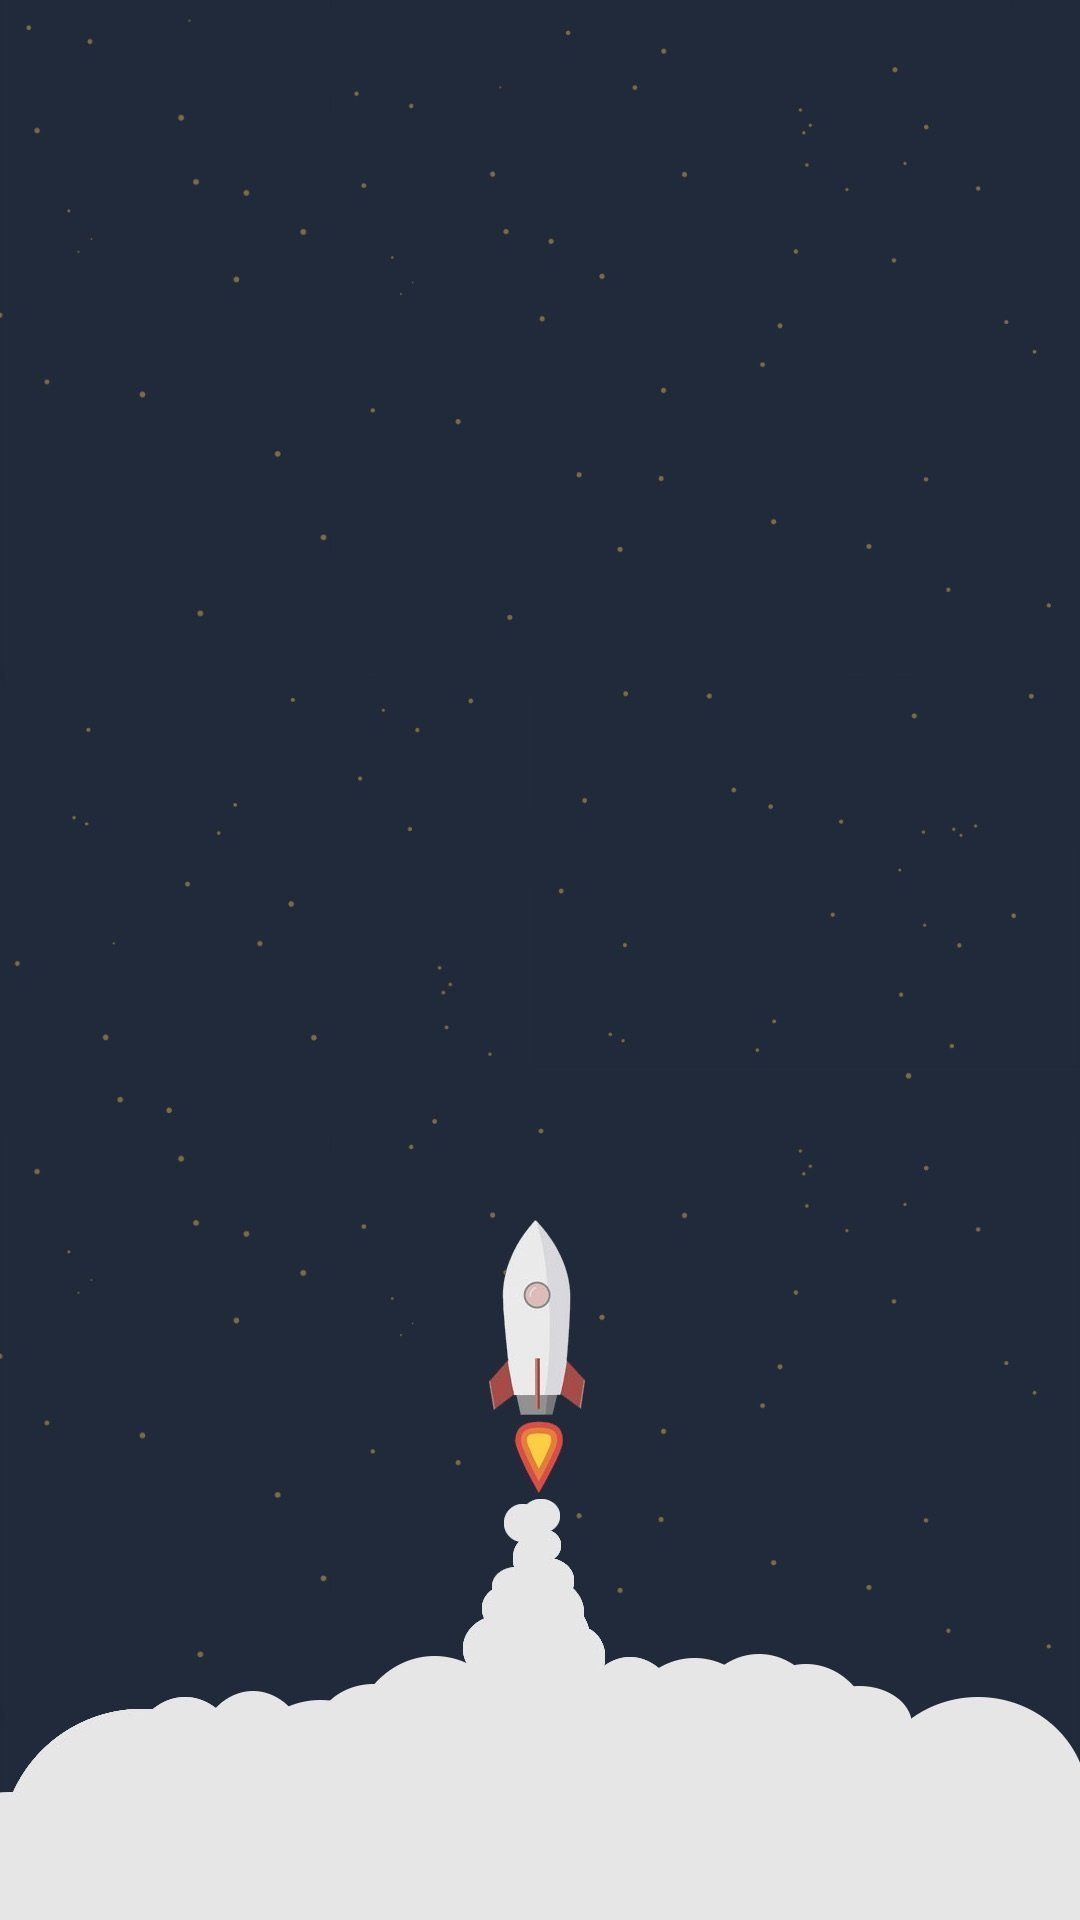 iPhone Wallpapers HD from ilikewallpaper.net,  Rocket Liftoff Illustration #iPhone #6 #wallpaper